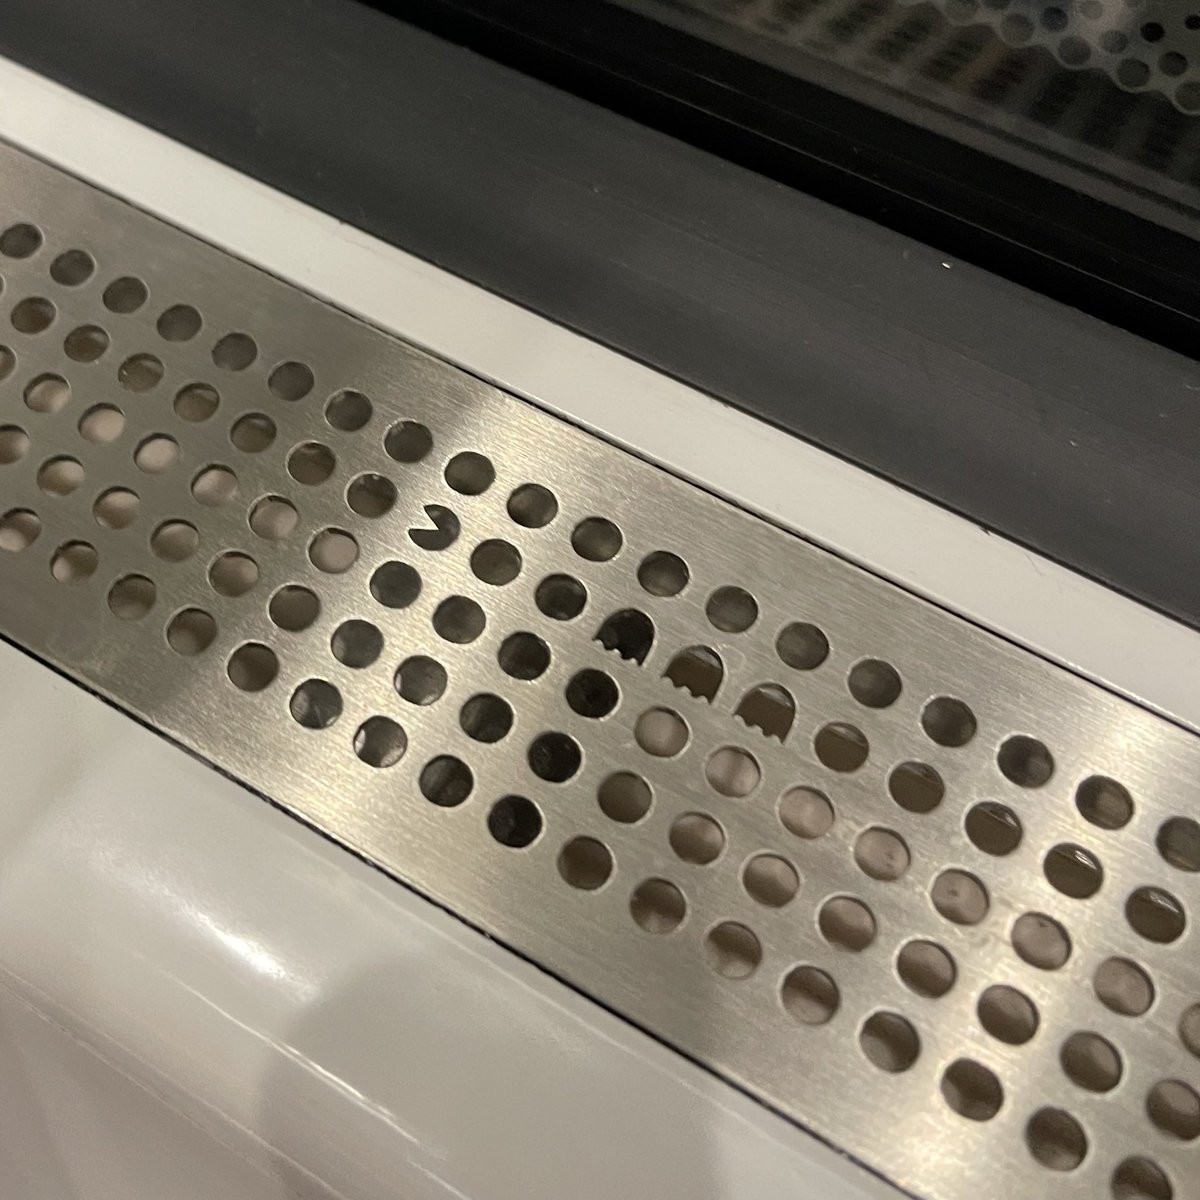 Cute Easter egg in the new subway train in Stockholm https://t.co/KZzOL6QuIV